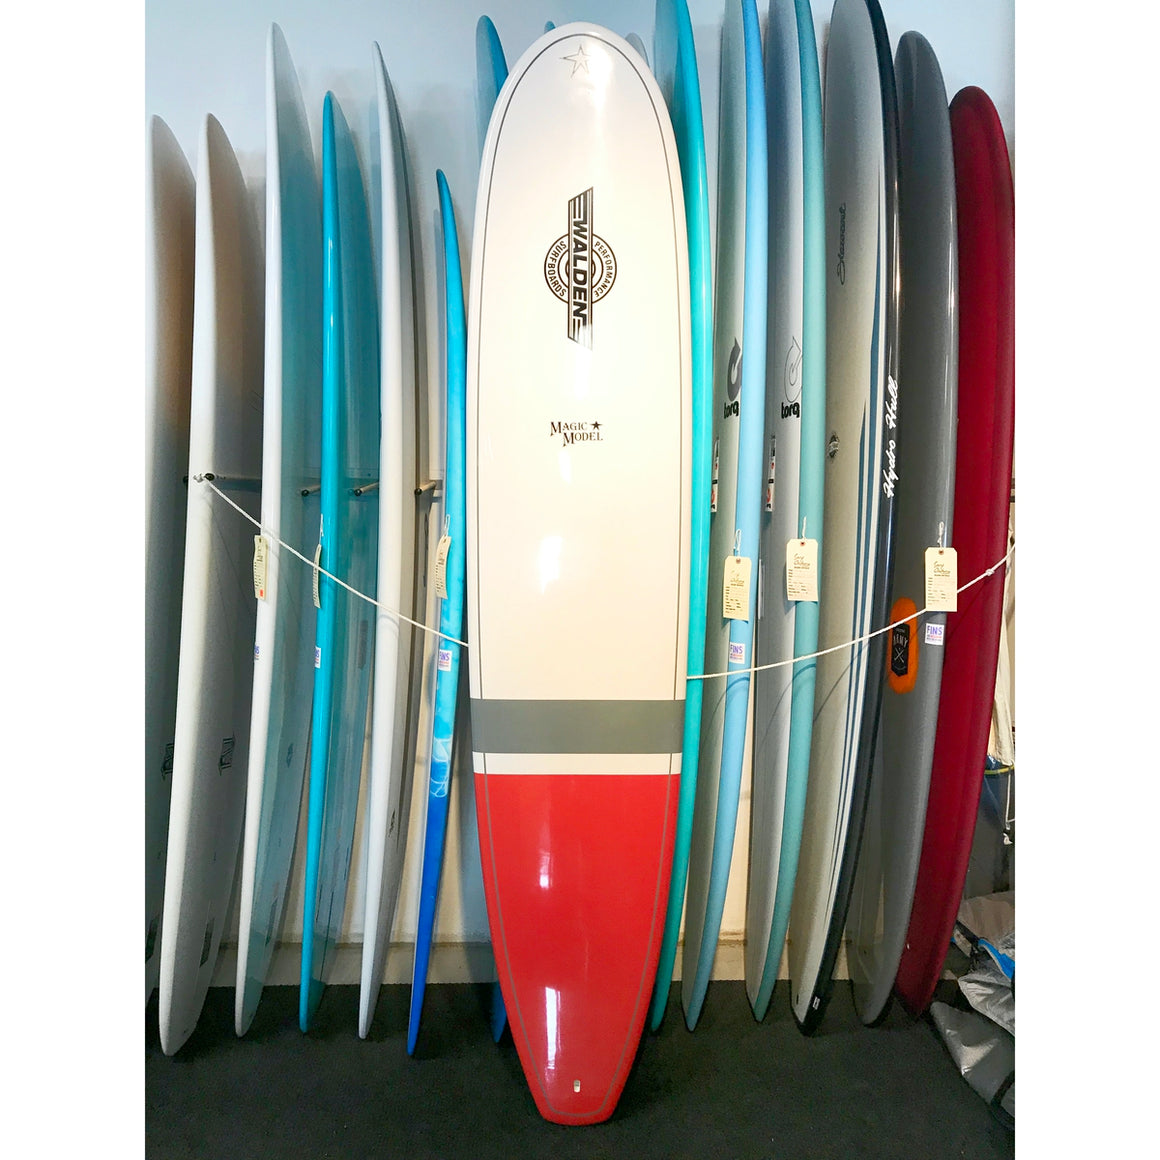 Walden 8'6 Magic Model - Tuflite C-Tech - RED